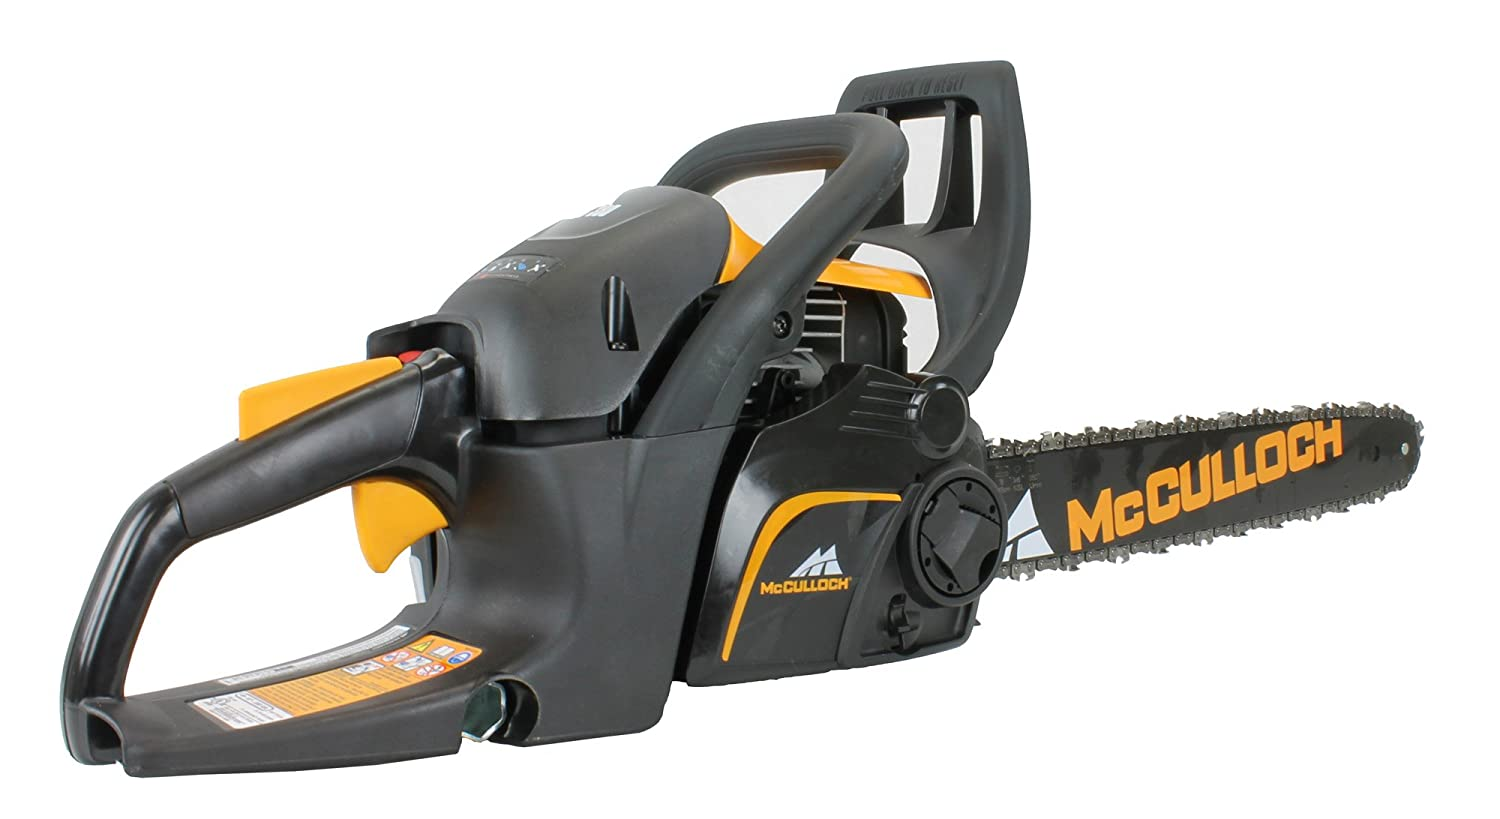 New mcculloch cs340 16 bar 34cc 2 cycle gas powered chain saw new mcculloch cs340 16 bar 34cc 2 cycle gas powered chain saw tree chainsaw amazon garden outdoors greentooth Choice Image